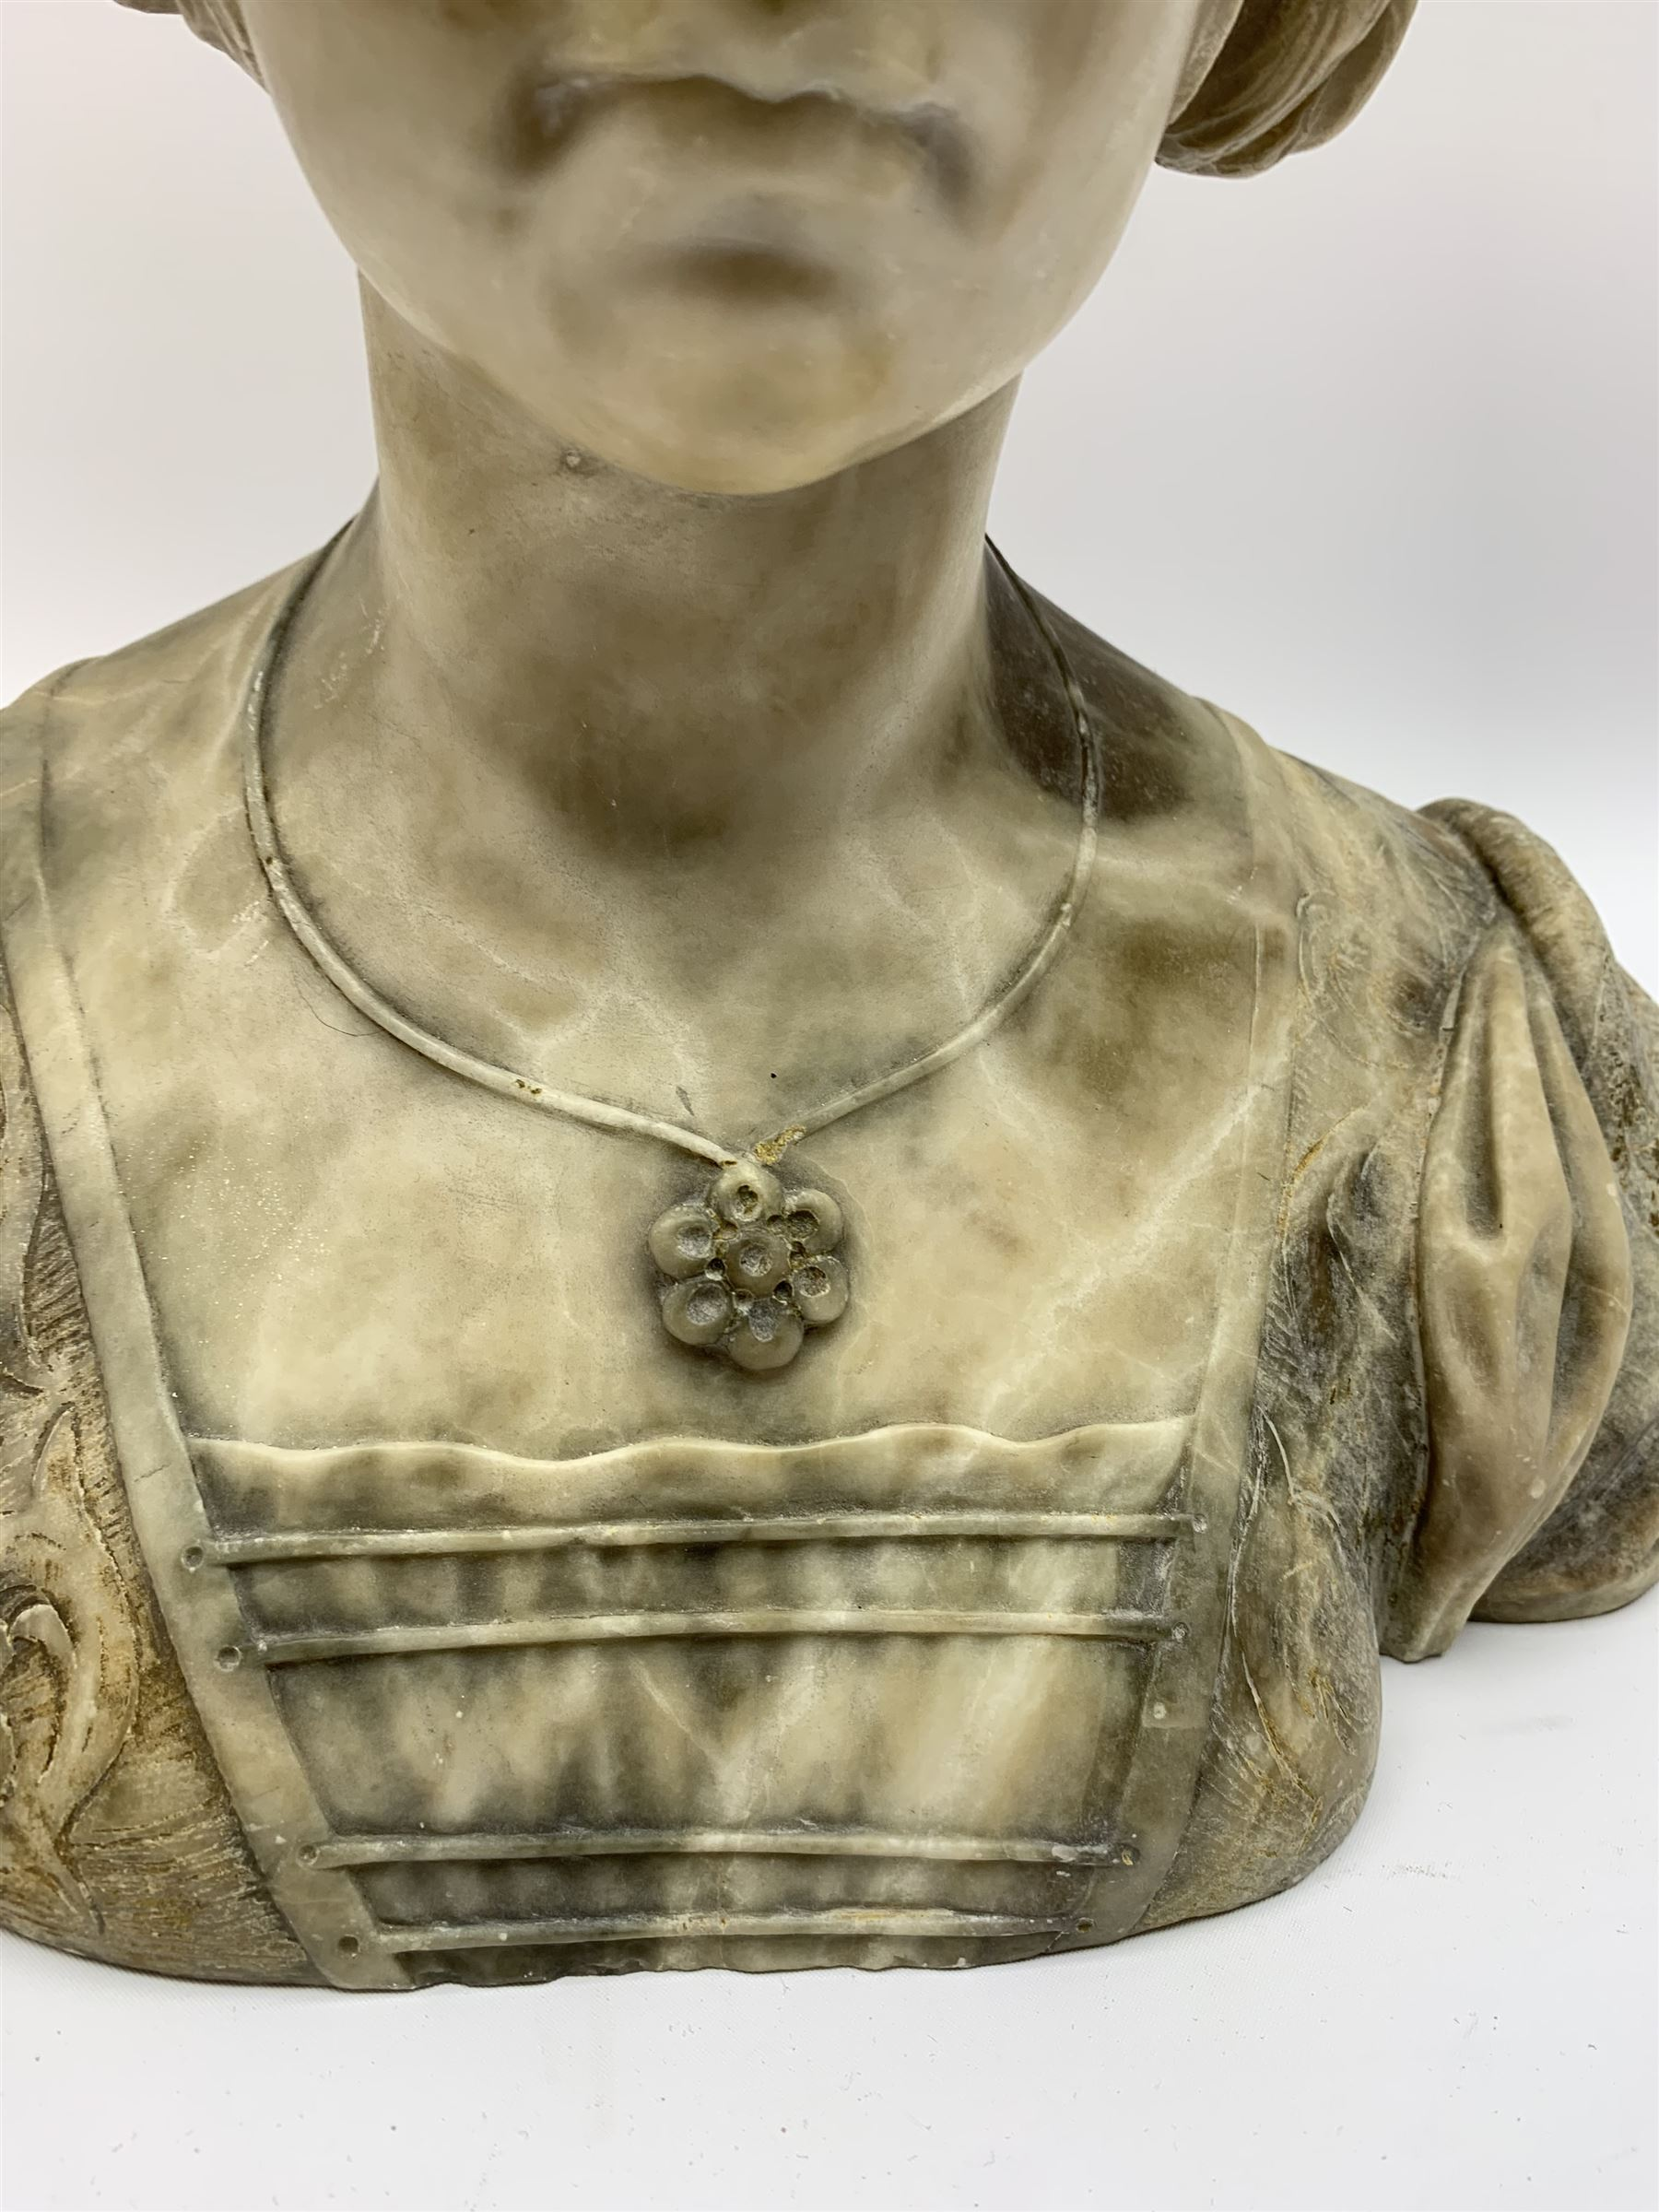 Carved marble bust modelled as a female figure - Image 4 of 10